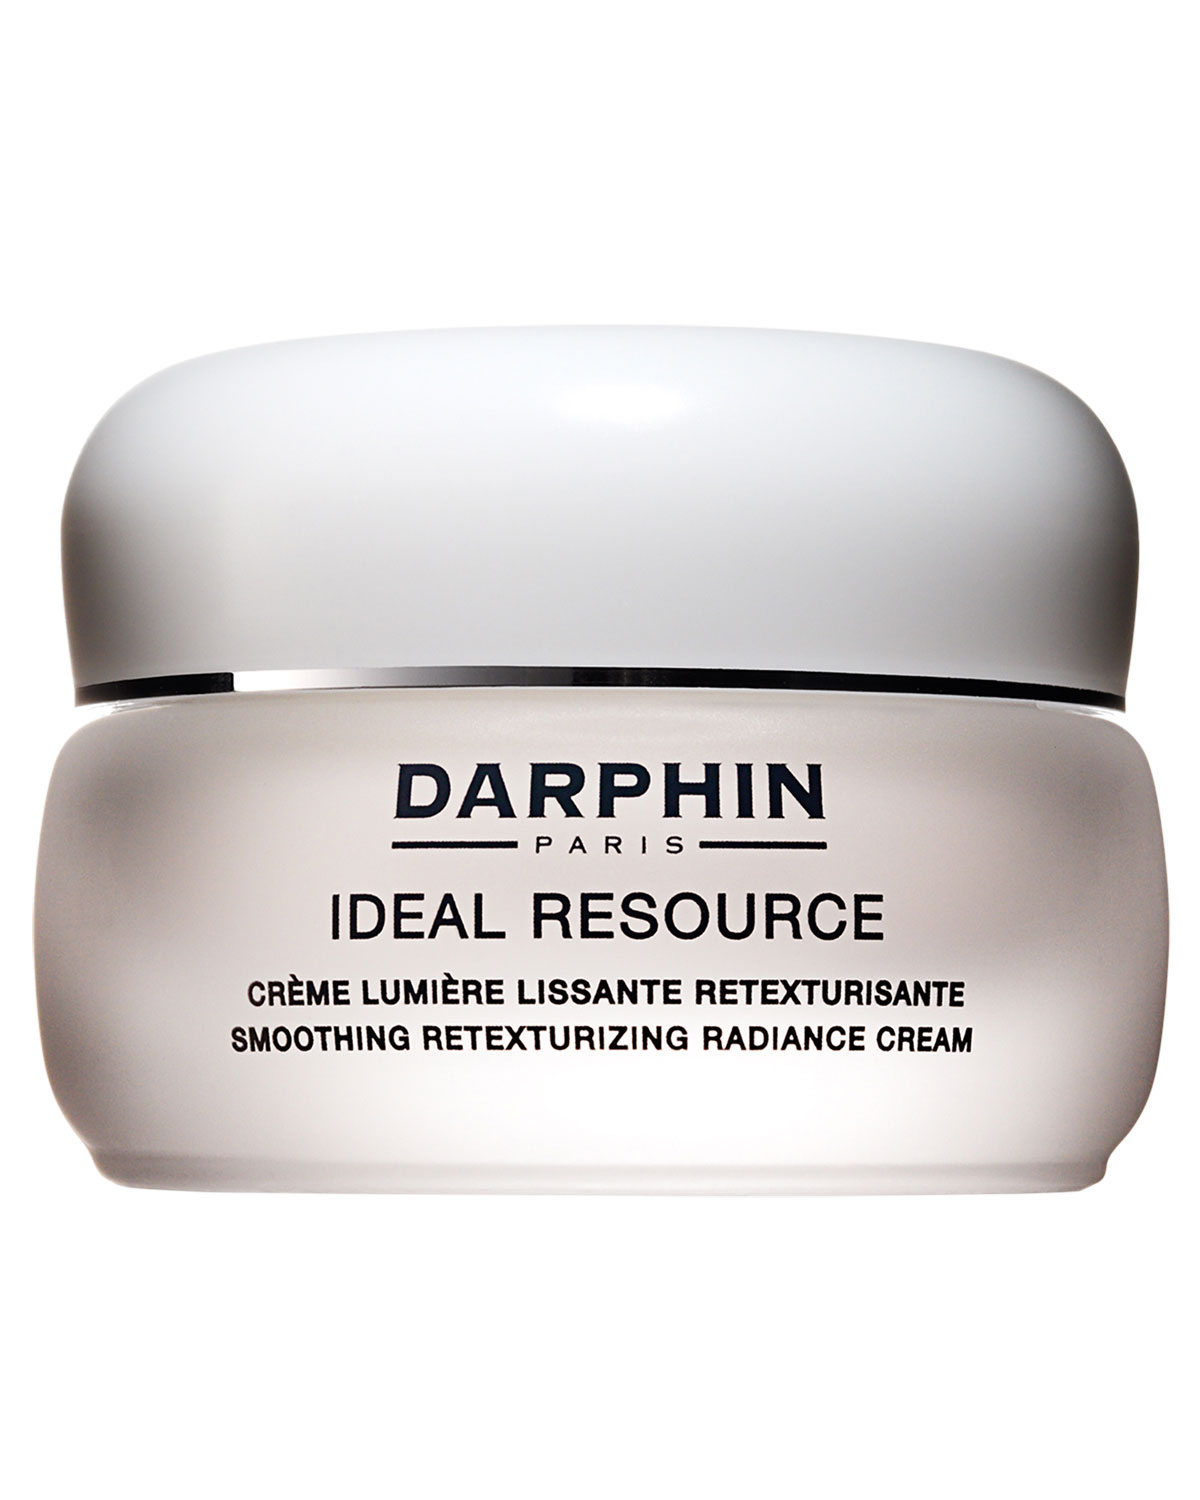 DARPHIN Ideal Resource Smoothing Retexturizing Radiance Cream, 1.7 Oz./ 50 Ml